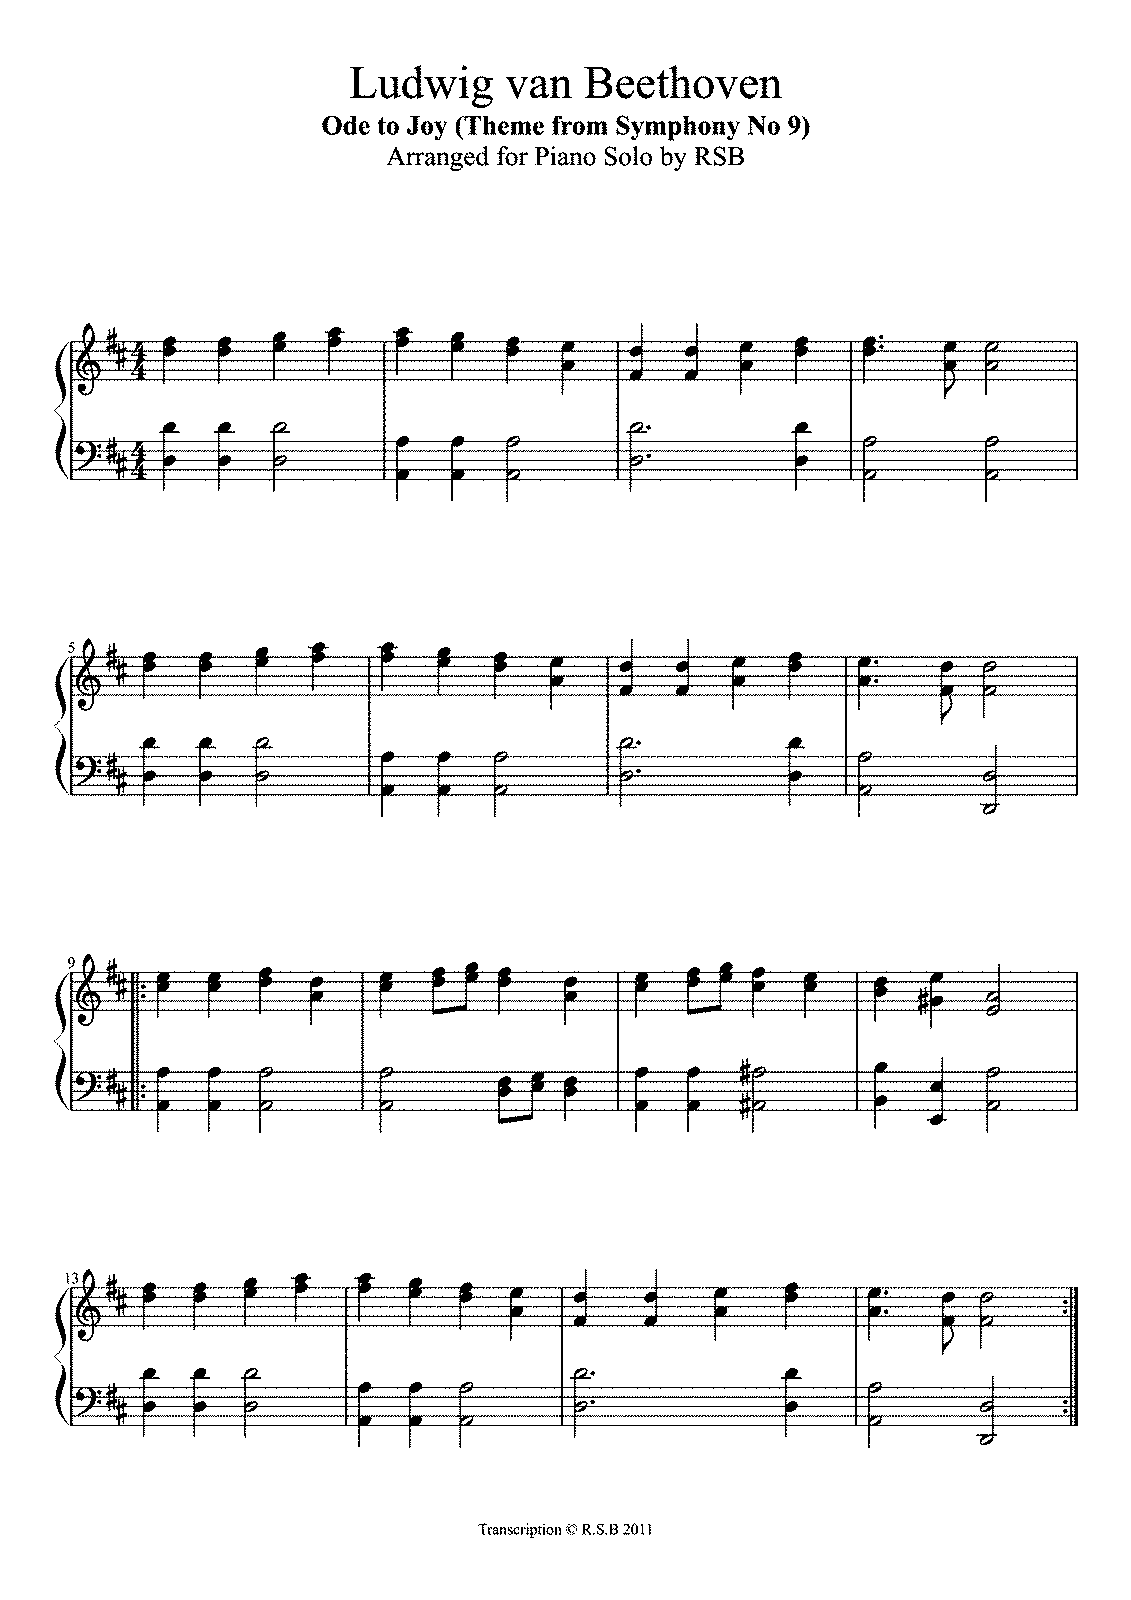 PMLP01607-Beethoven - Ode to joy - Piano (RSB).pdf